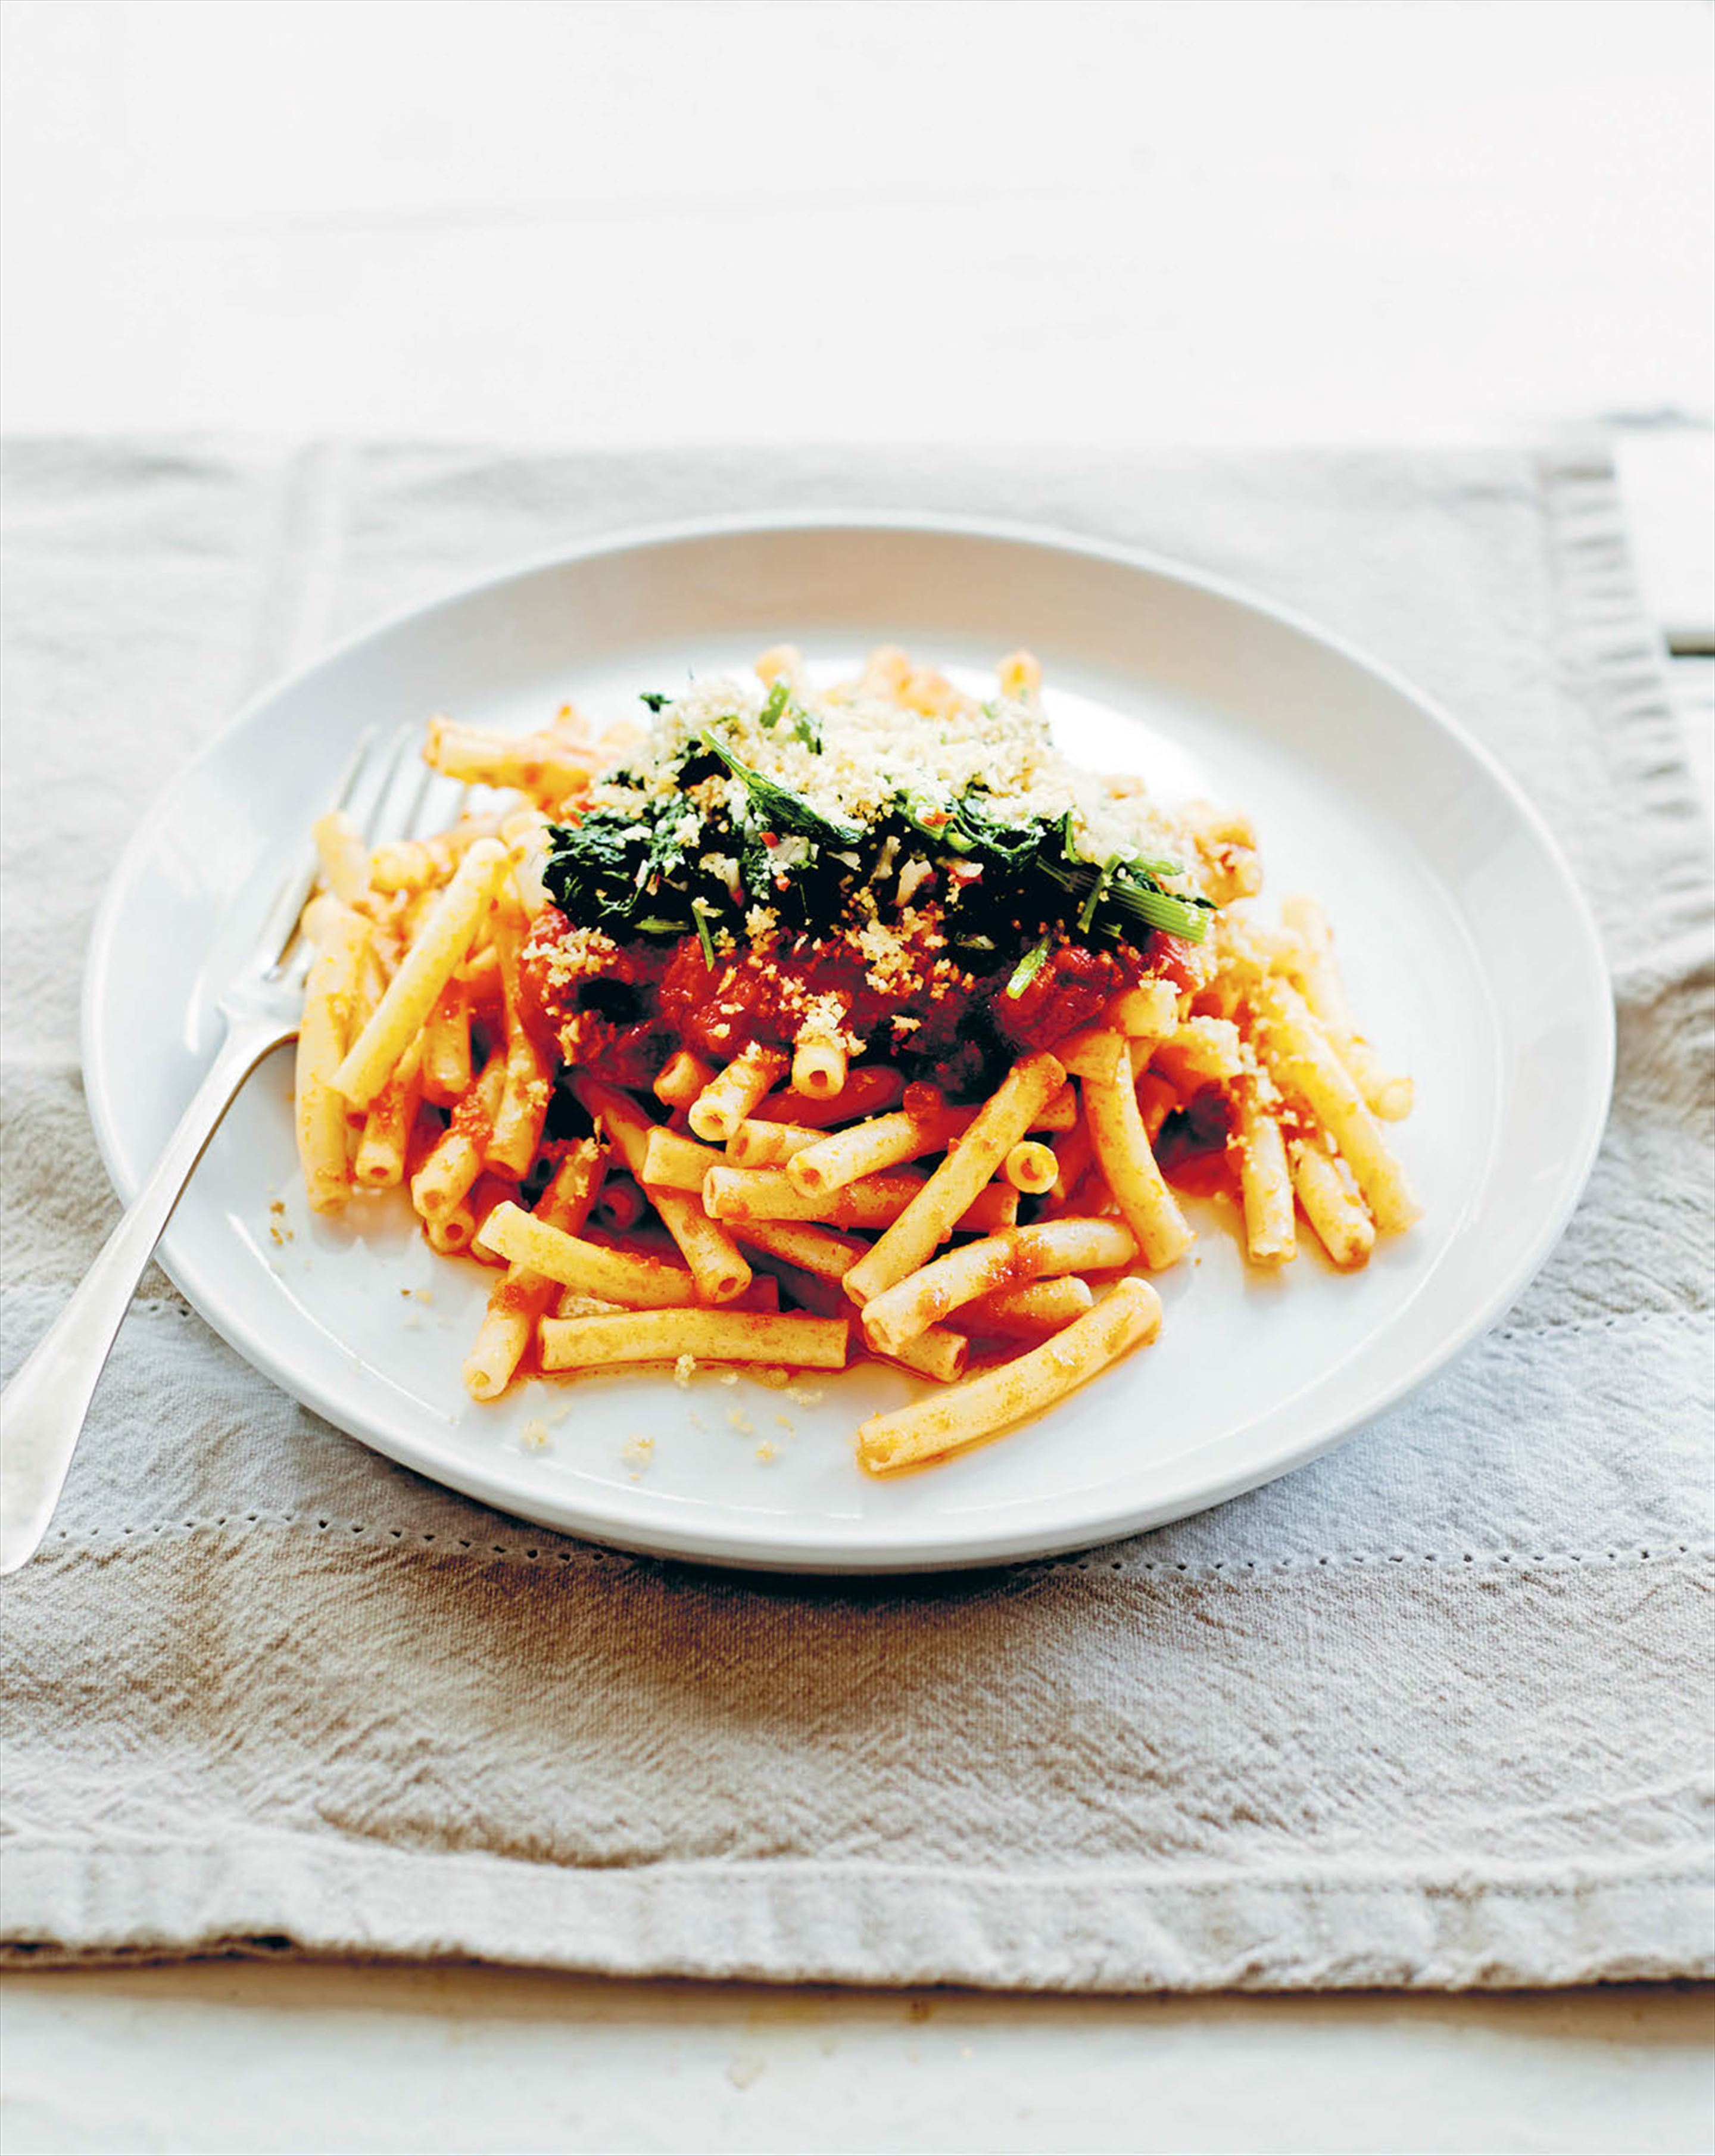 Pasta finocchi with mollica